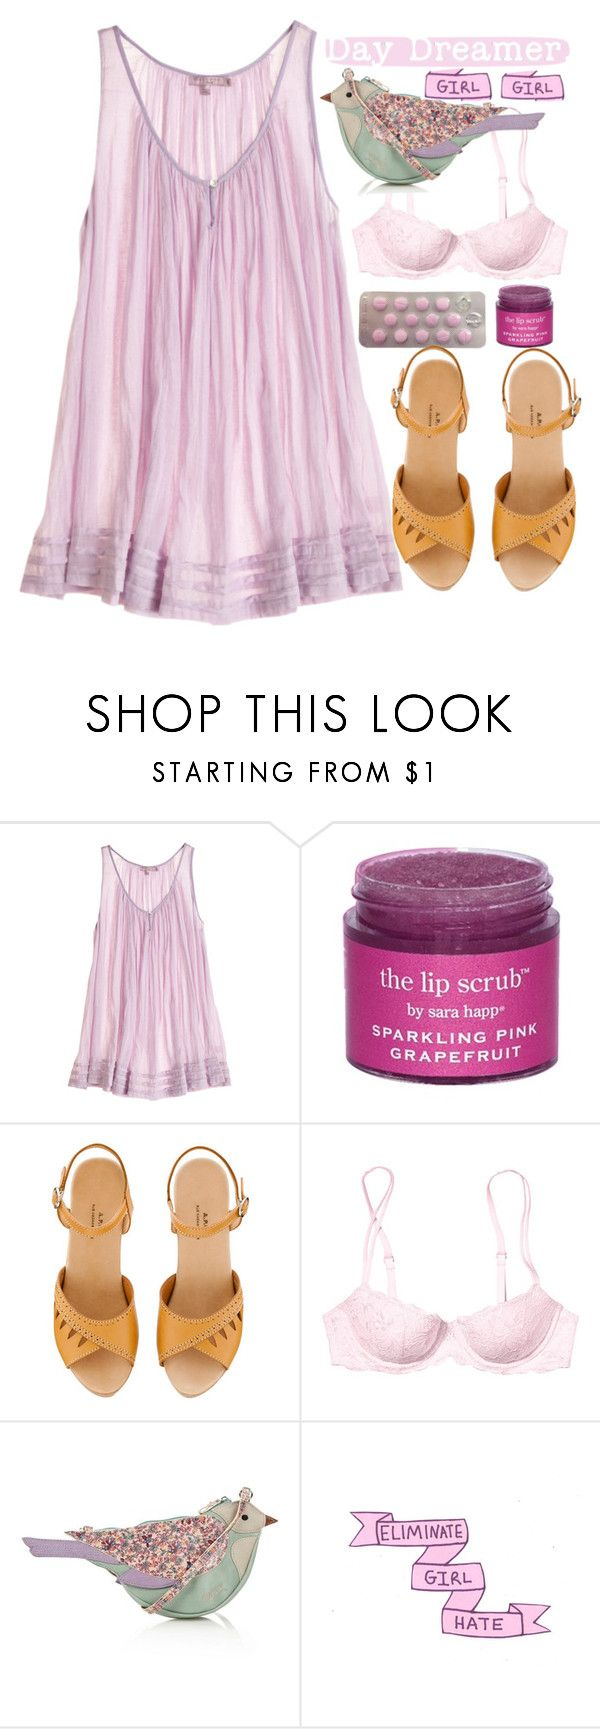 """""""The dreaming ones"""" by sazyc ❤ liked on Polyvore featuring Calypso St. Barth, Sara Happ, A.P.C., Victoria's Secret PINK, Mantaray, cute, Pink, sweet and girly"""